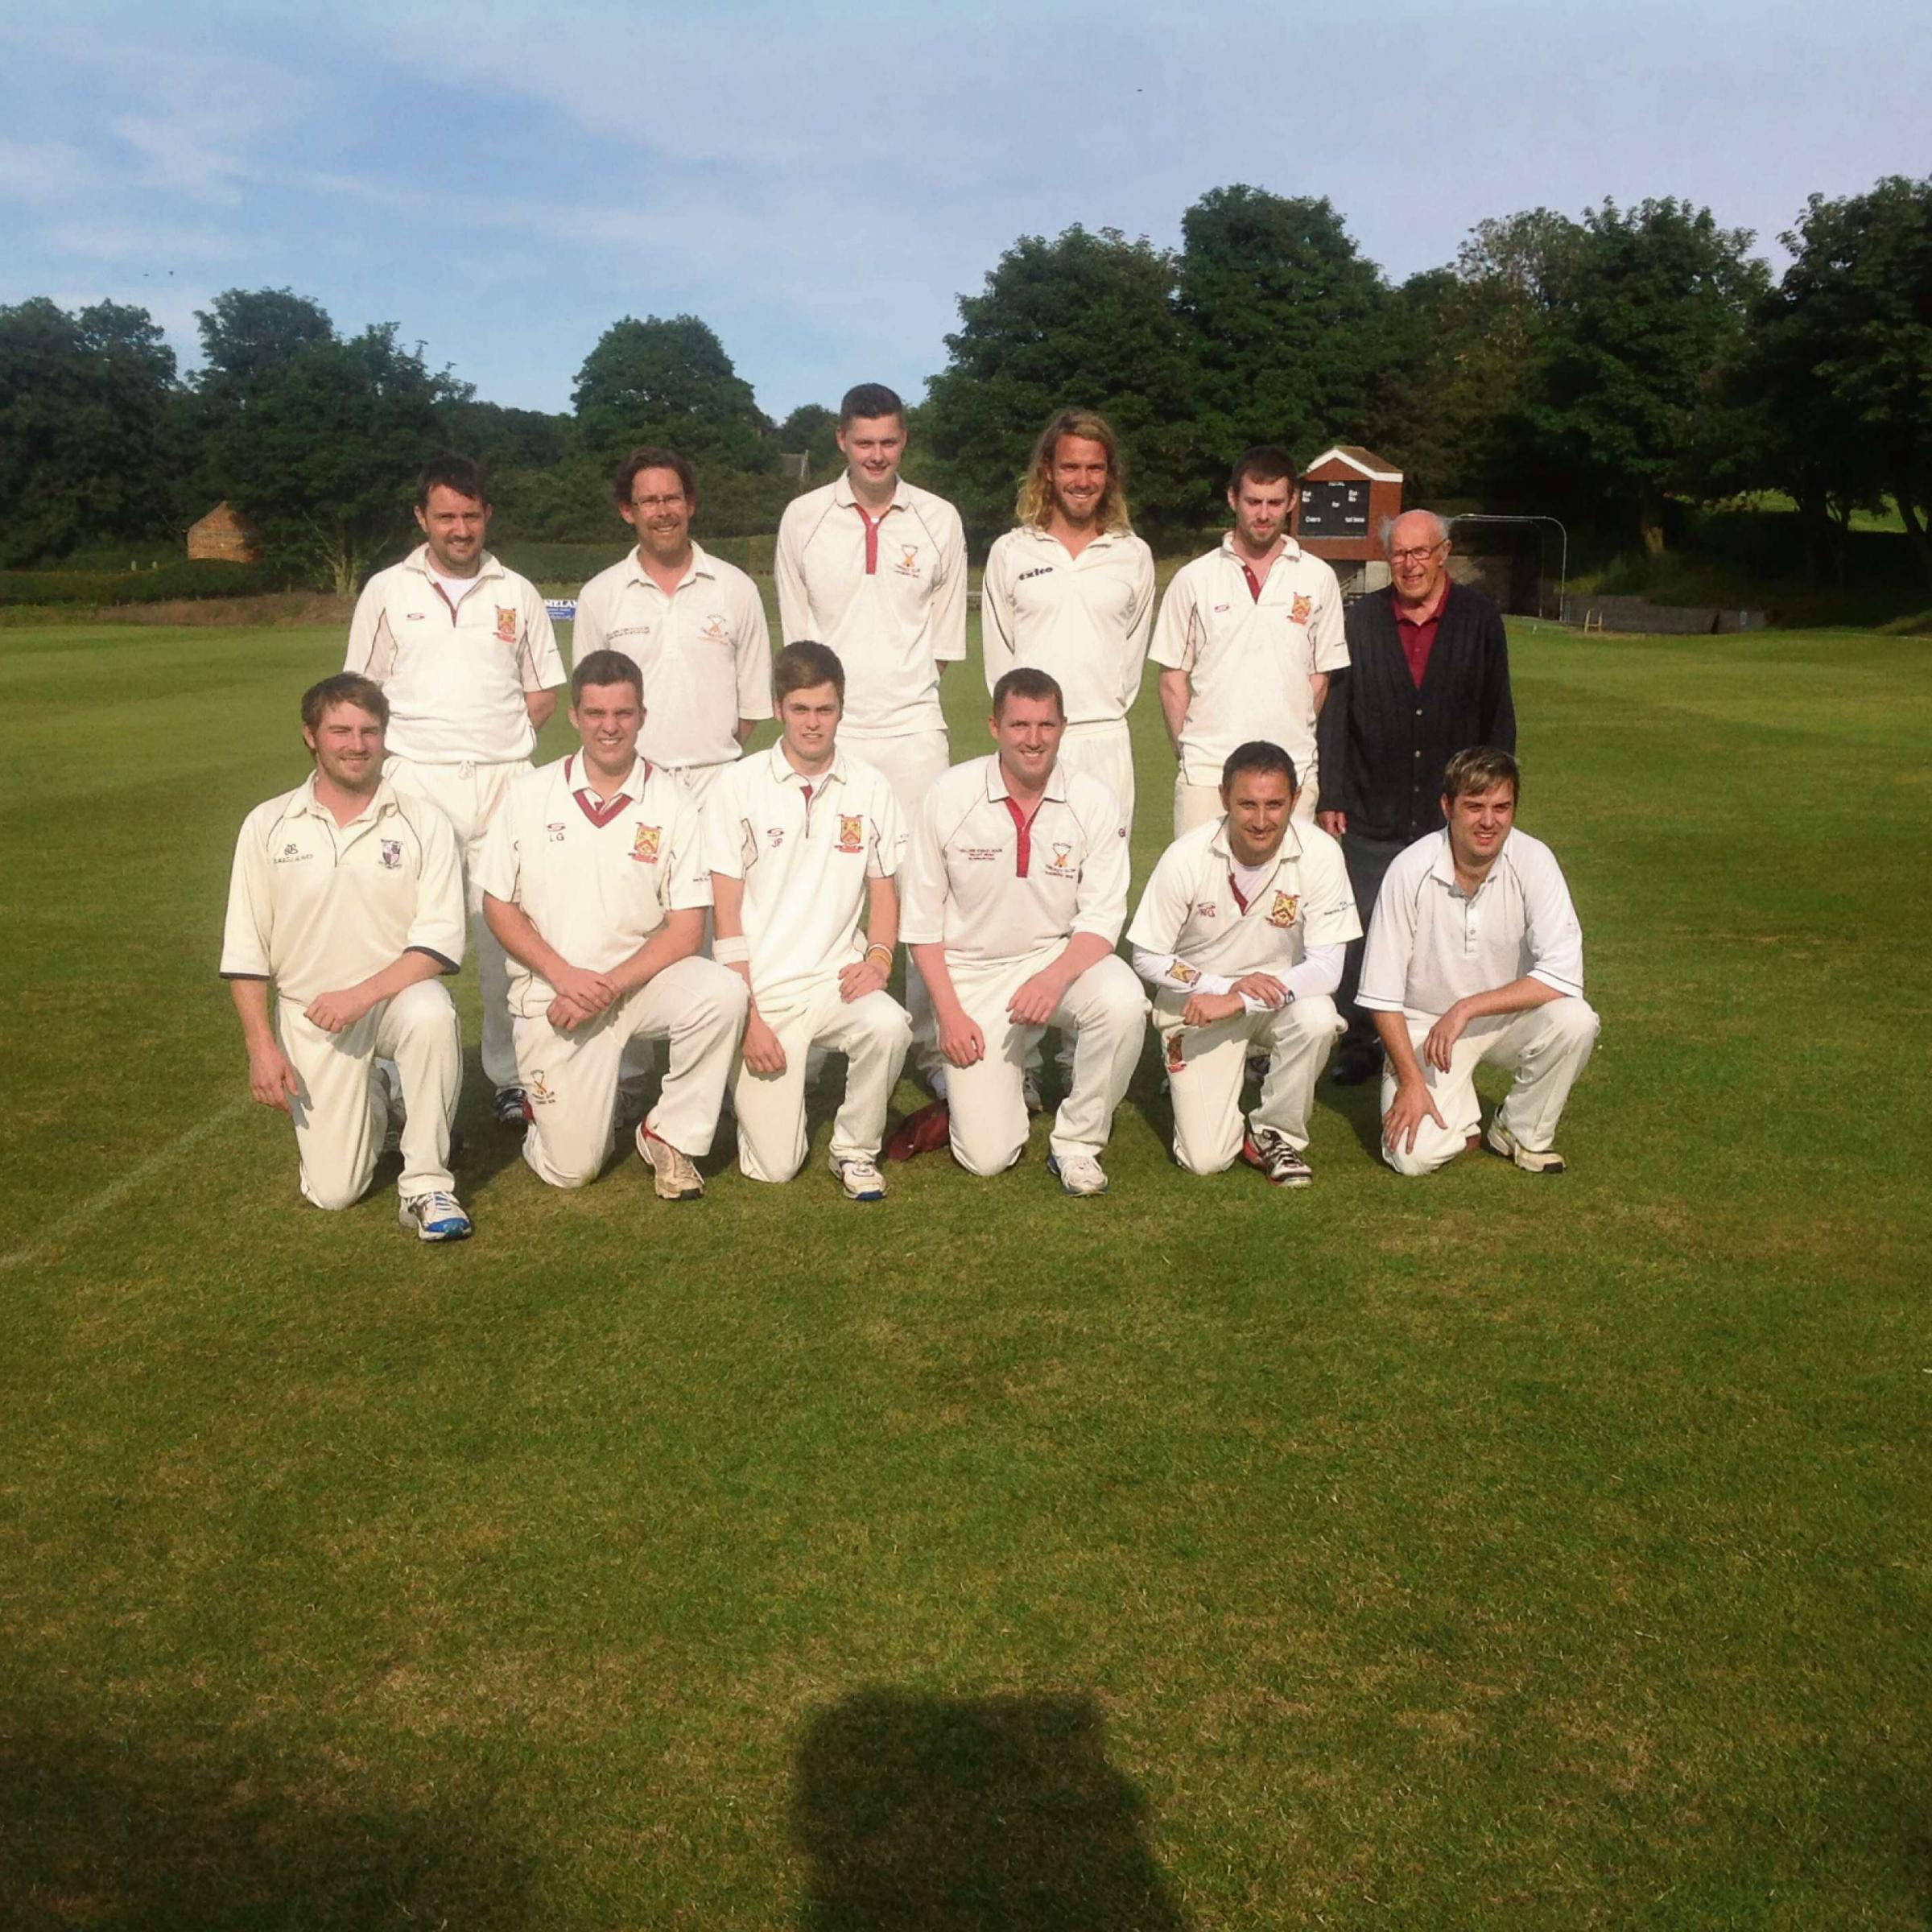 GREAT SEMI-FINAL: Staxton 'A', who reached the Harburn Cup final in thrilling fashion